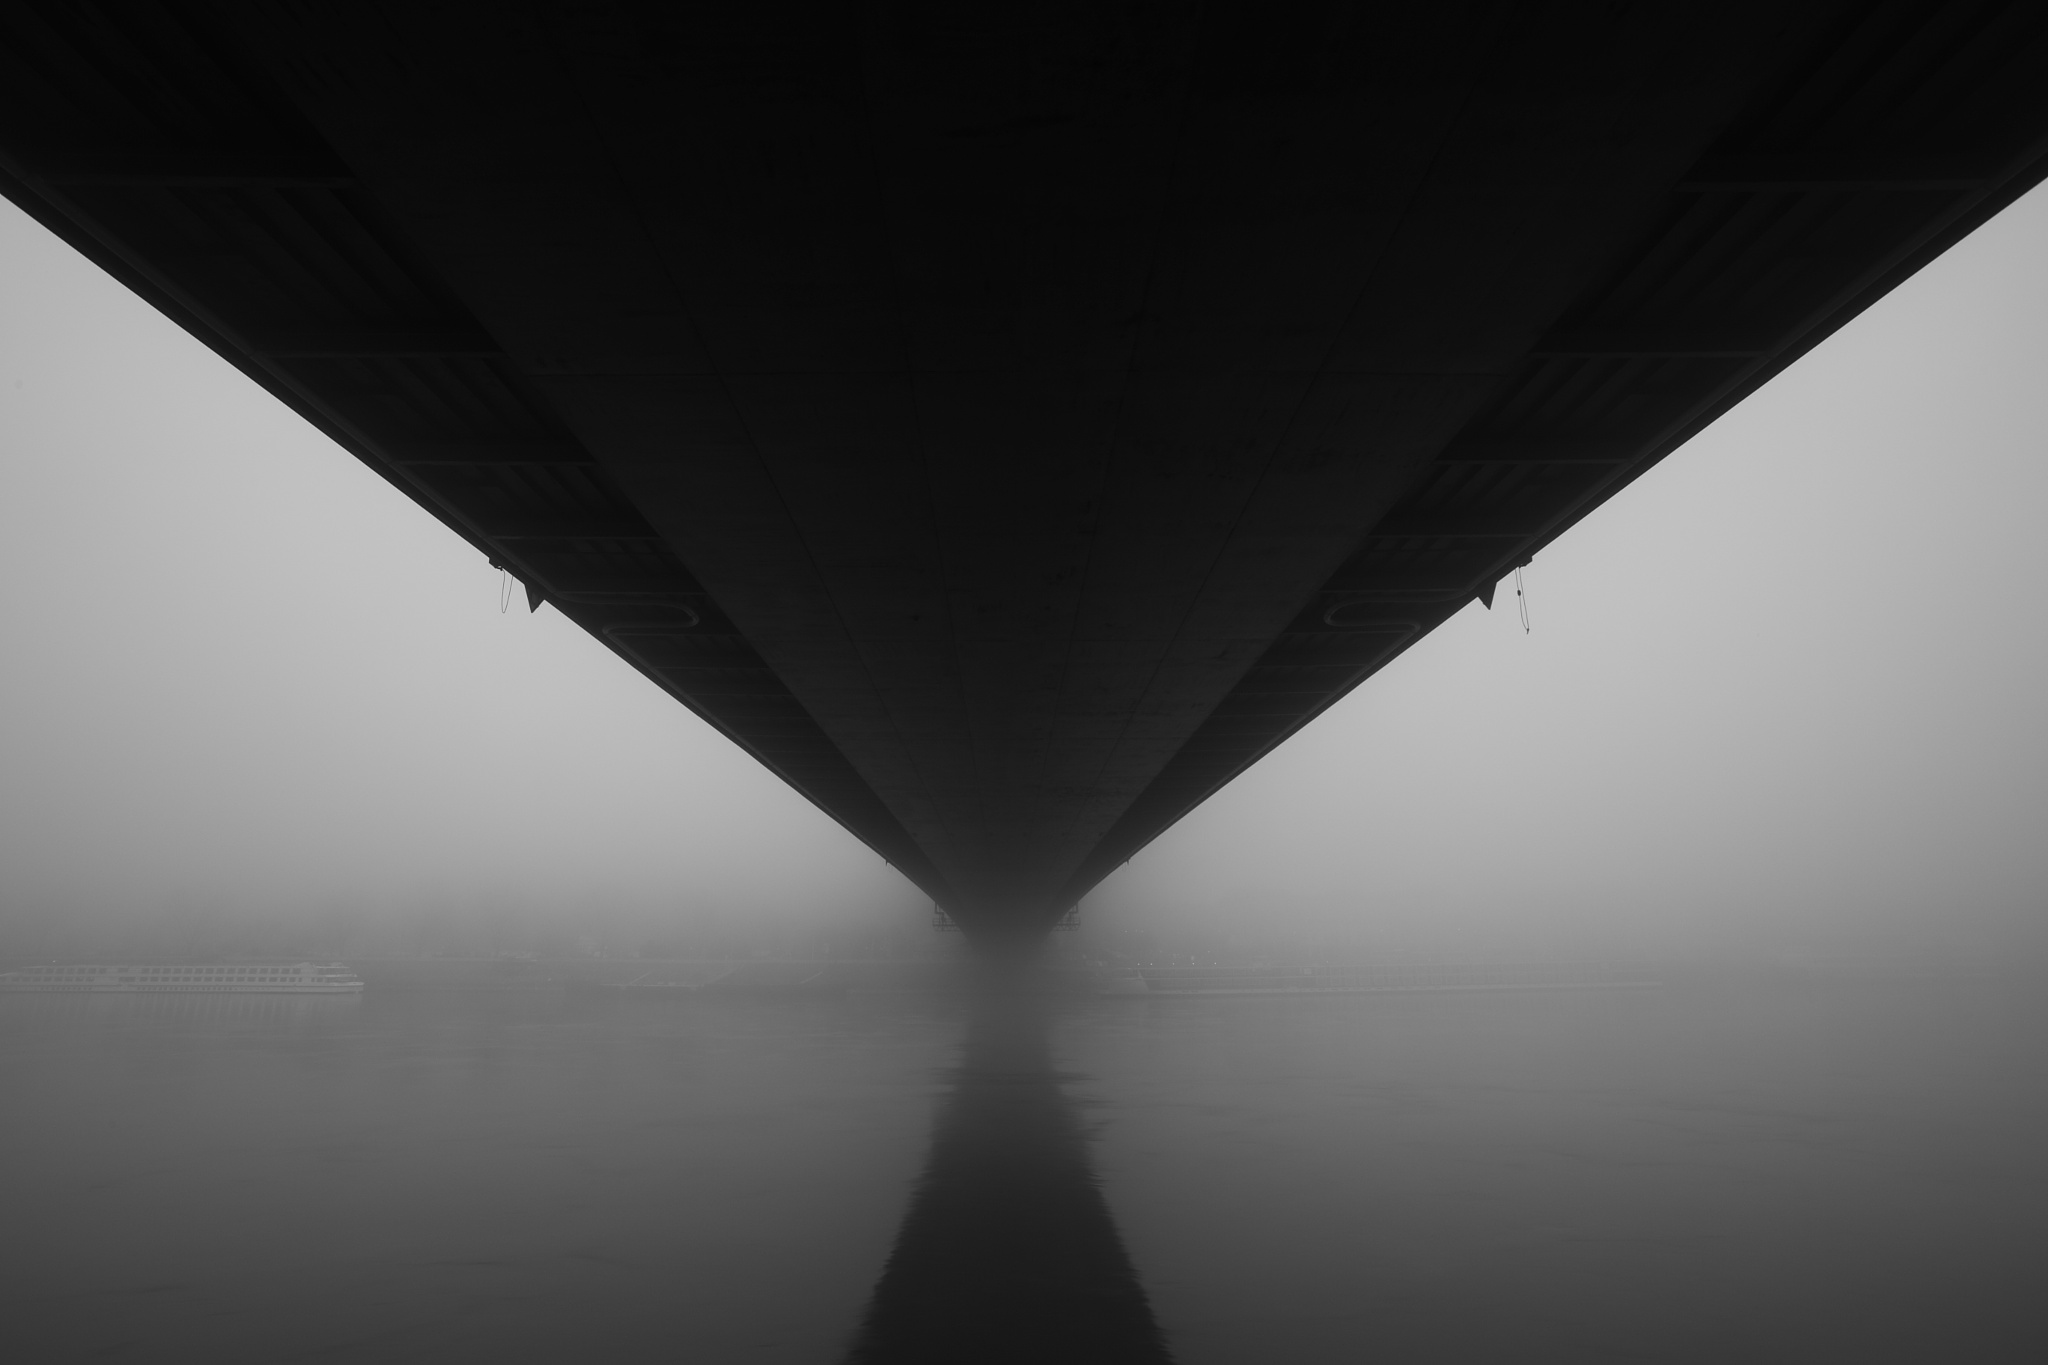 SNP hidden in the fog by Ladislav Szabó